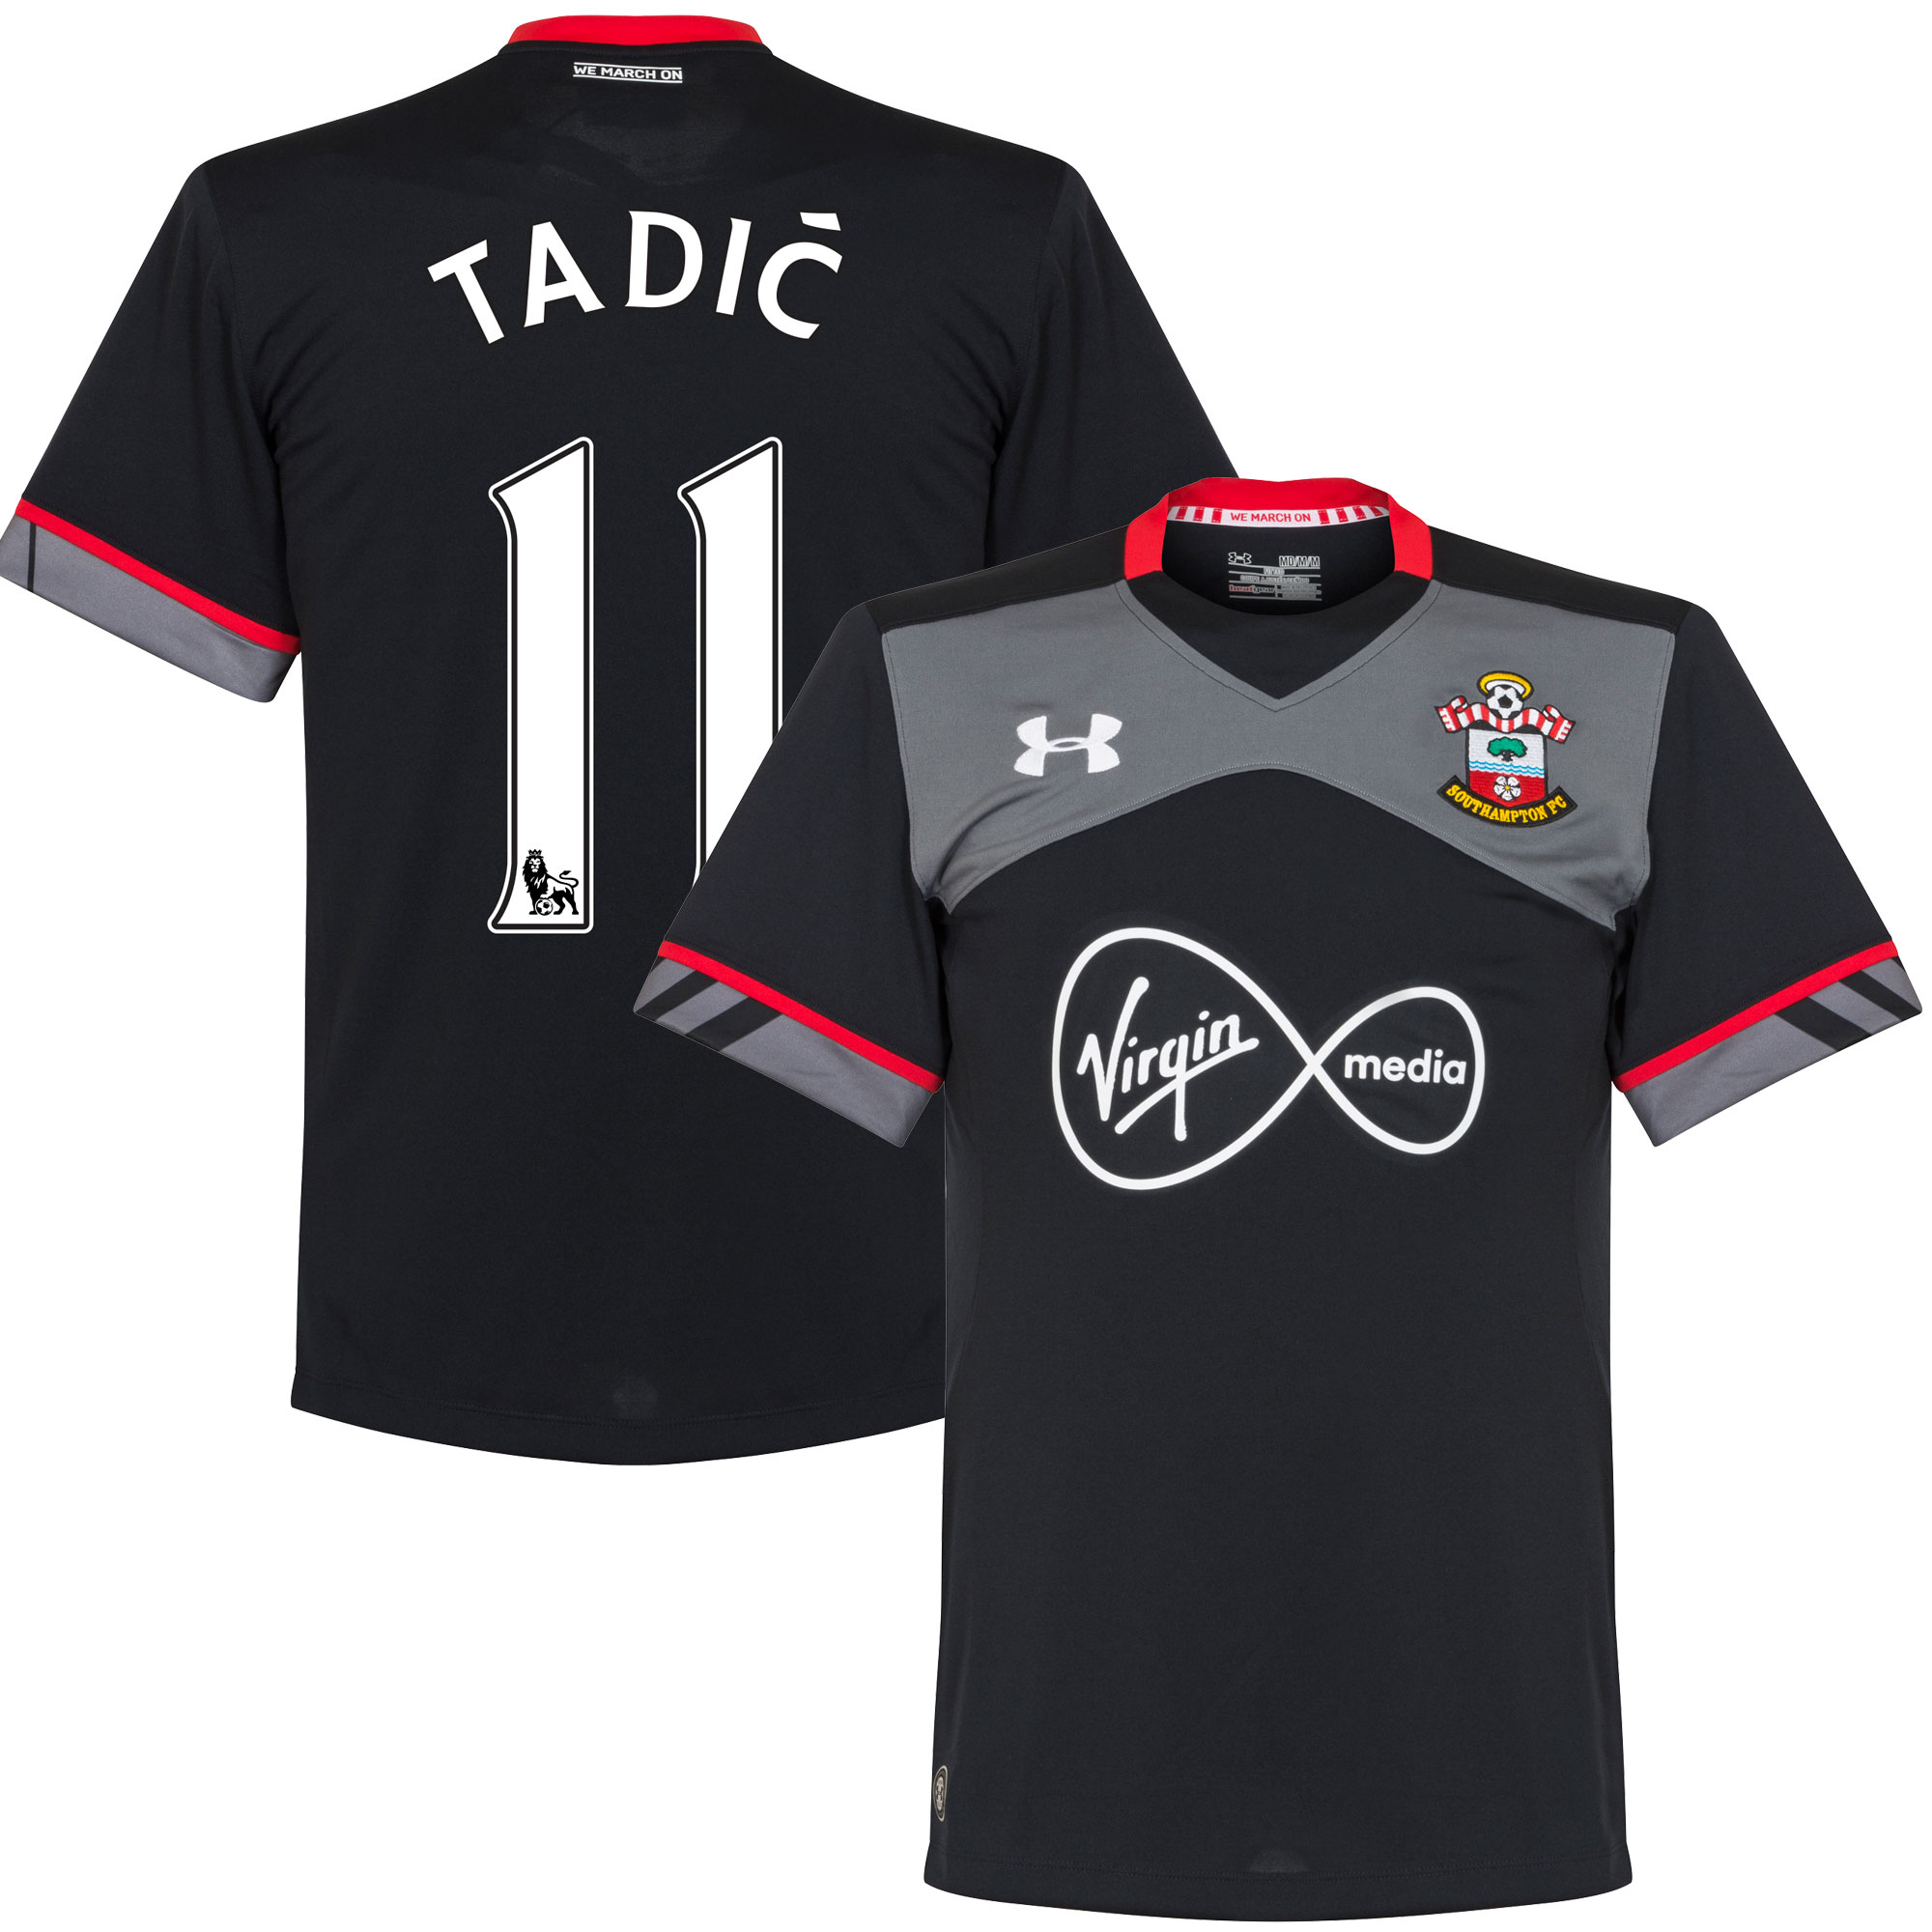 Southampton Away Tadic Jersey 2016 / 2017 (PS-Pro Player Printing) - M